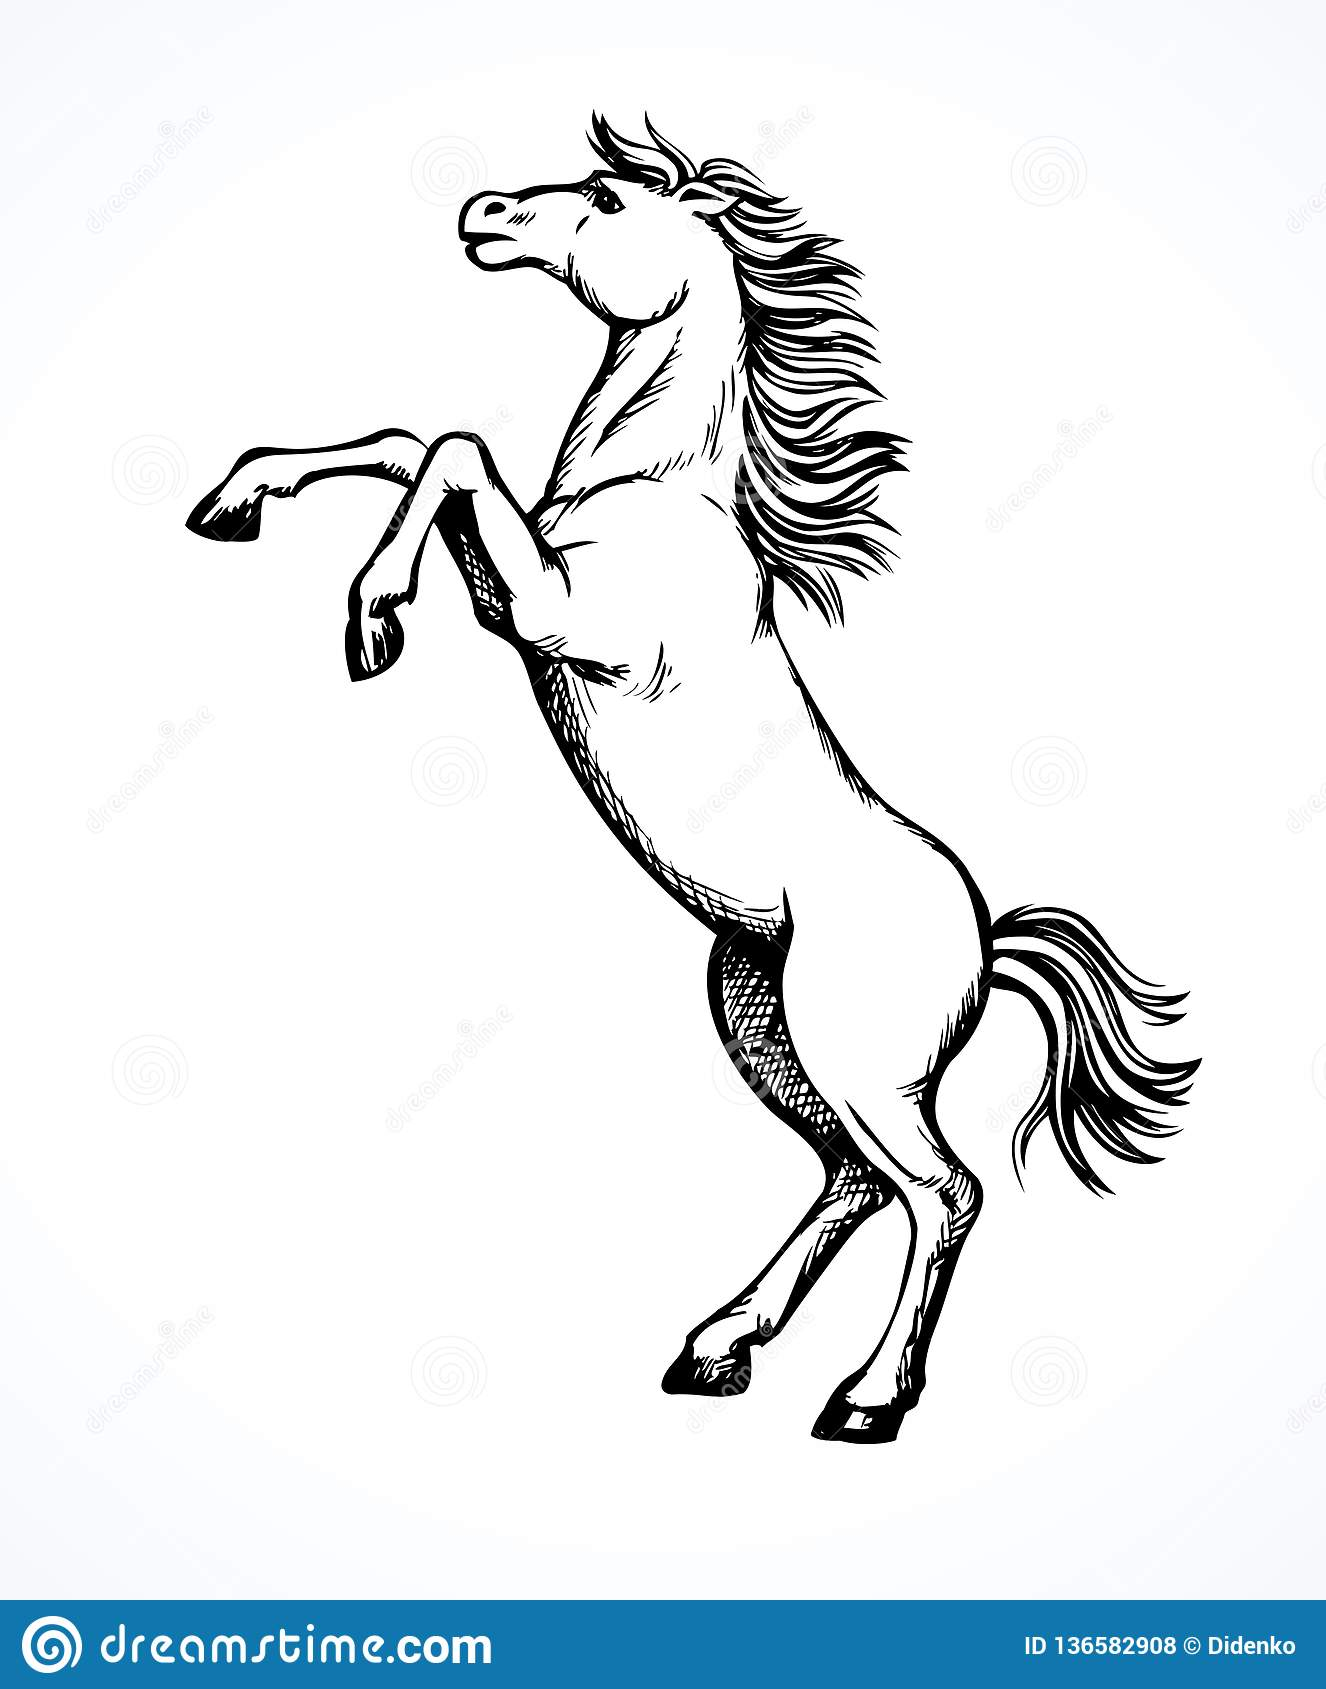 Horse Rearing Up Sketch Stock Illustrations 37 Horse Rearing Up Sketch Stock Illustrations Vectors Clipart Dreamstime